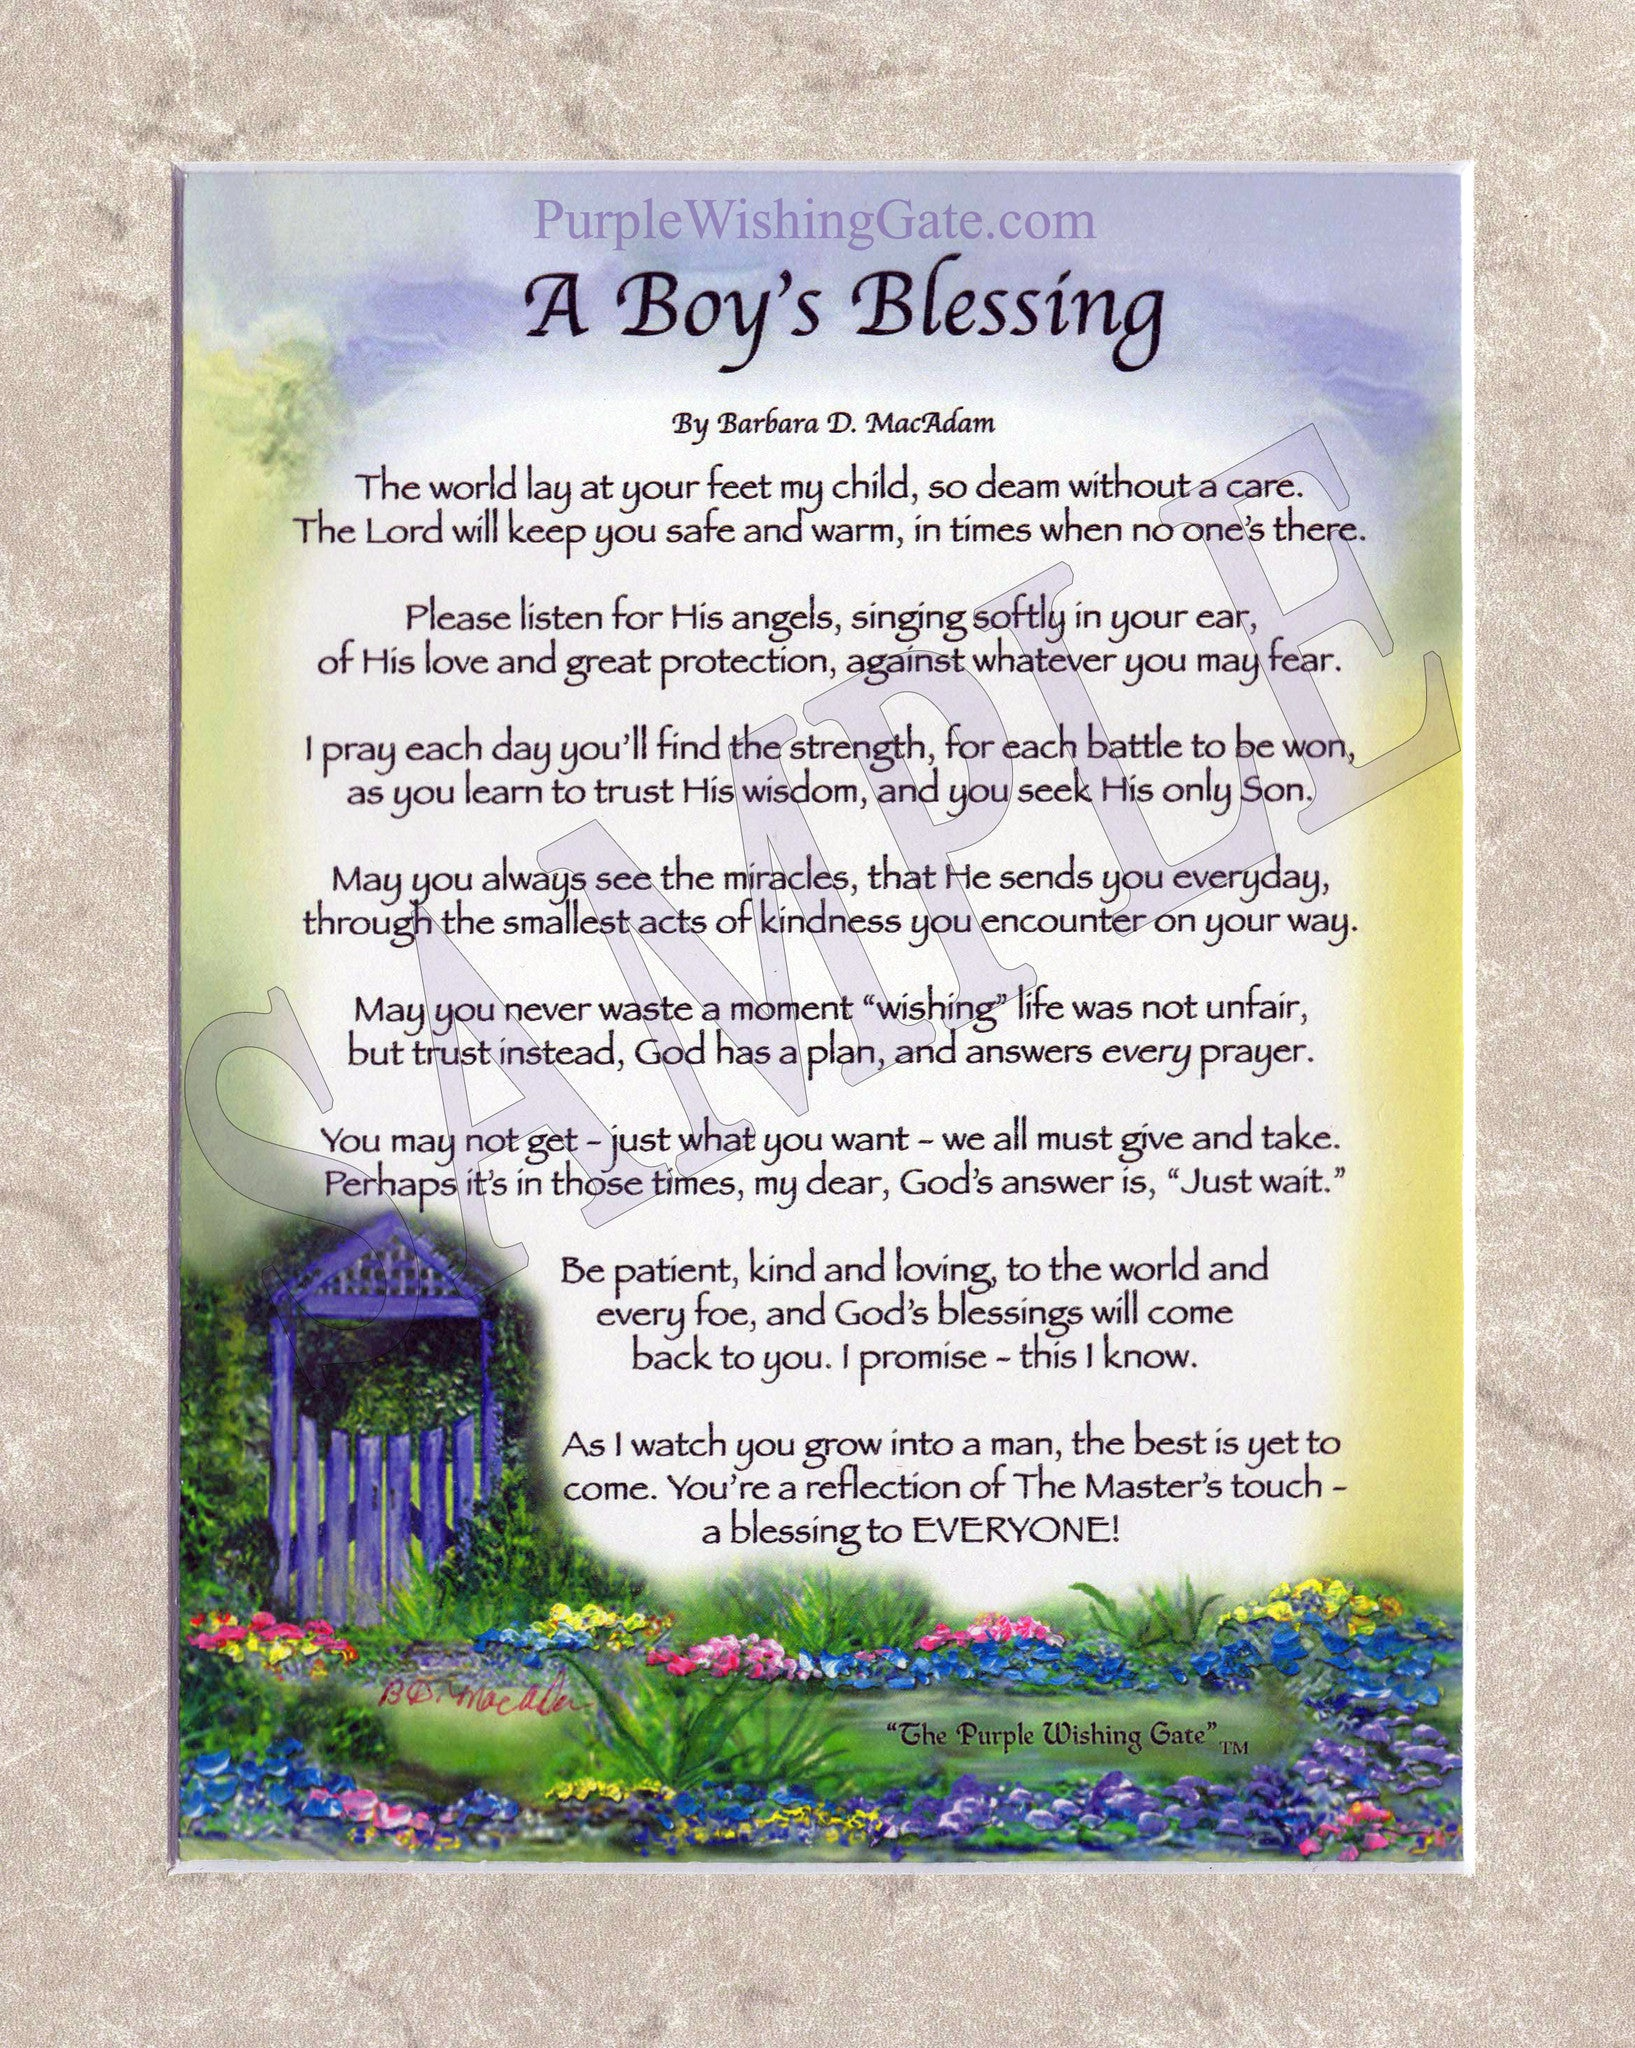 A Boy's Blessing (8x10) - 8x10 Custom Matted Clearance - PurpleWishingGate.com